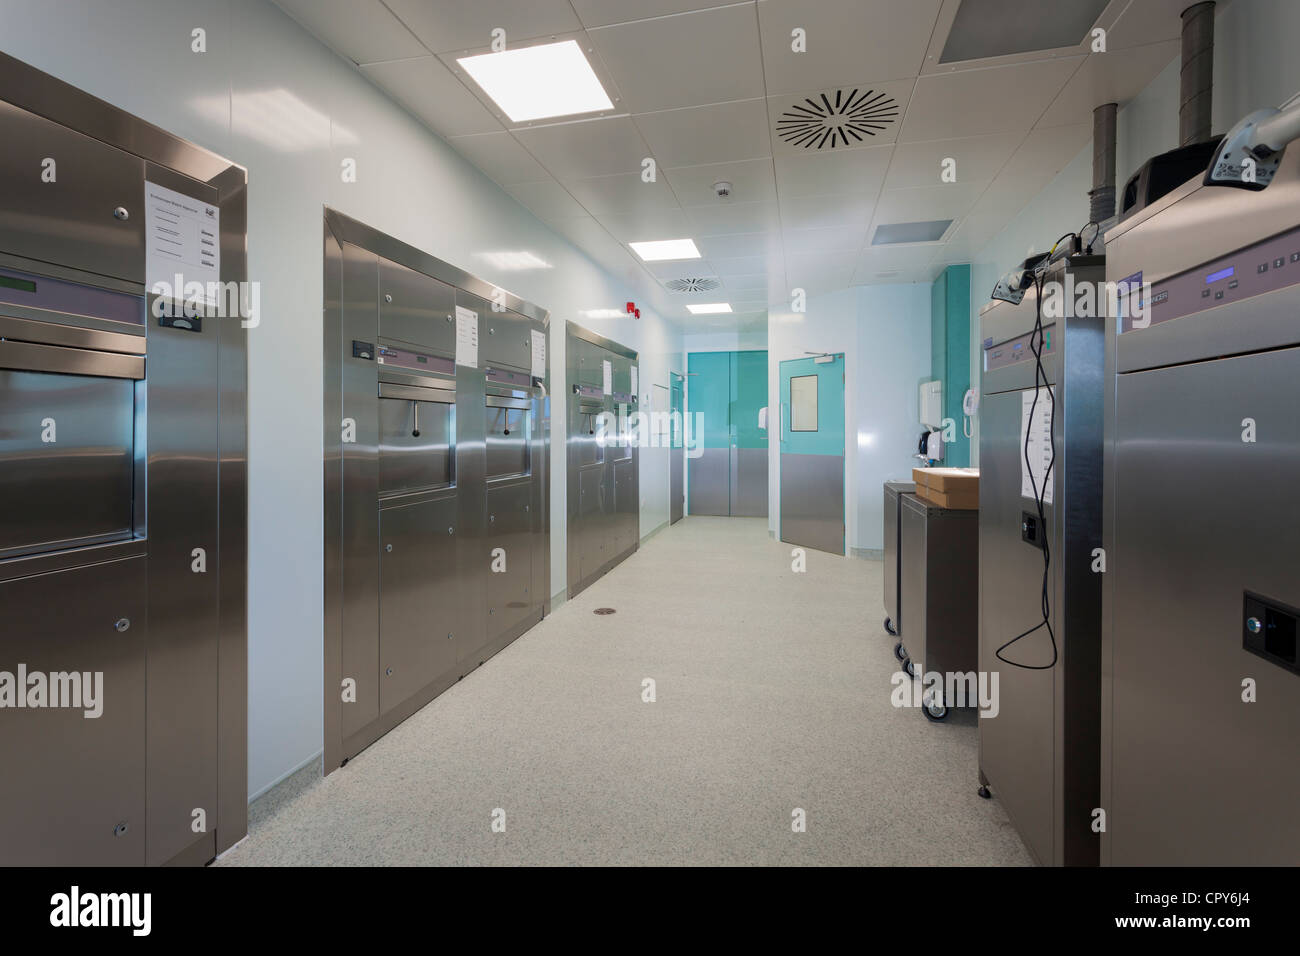 Royal Bournemouth Hospital Endoscopy Unit. Instrument processing area - clean side - Stock Image